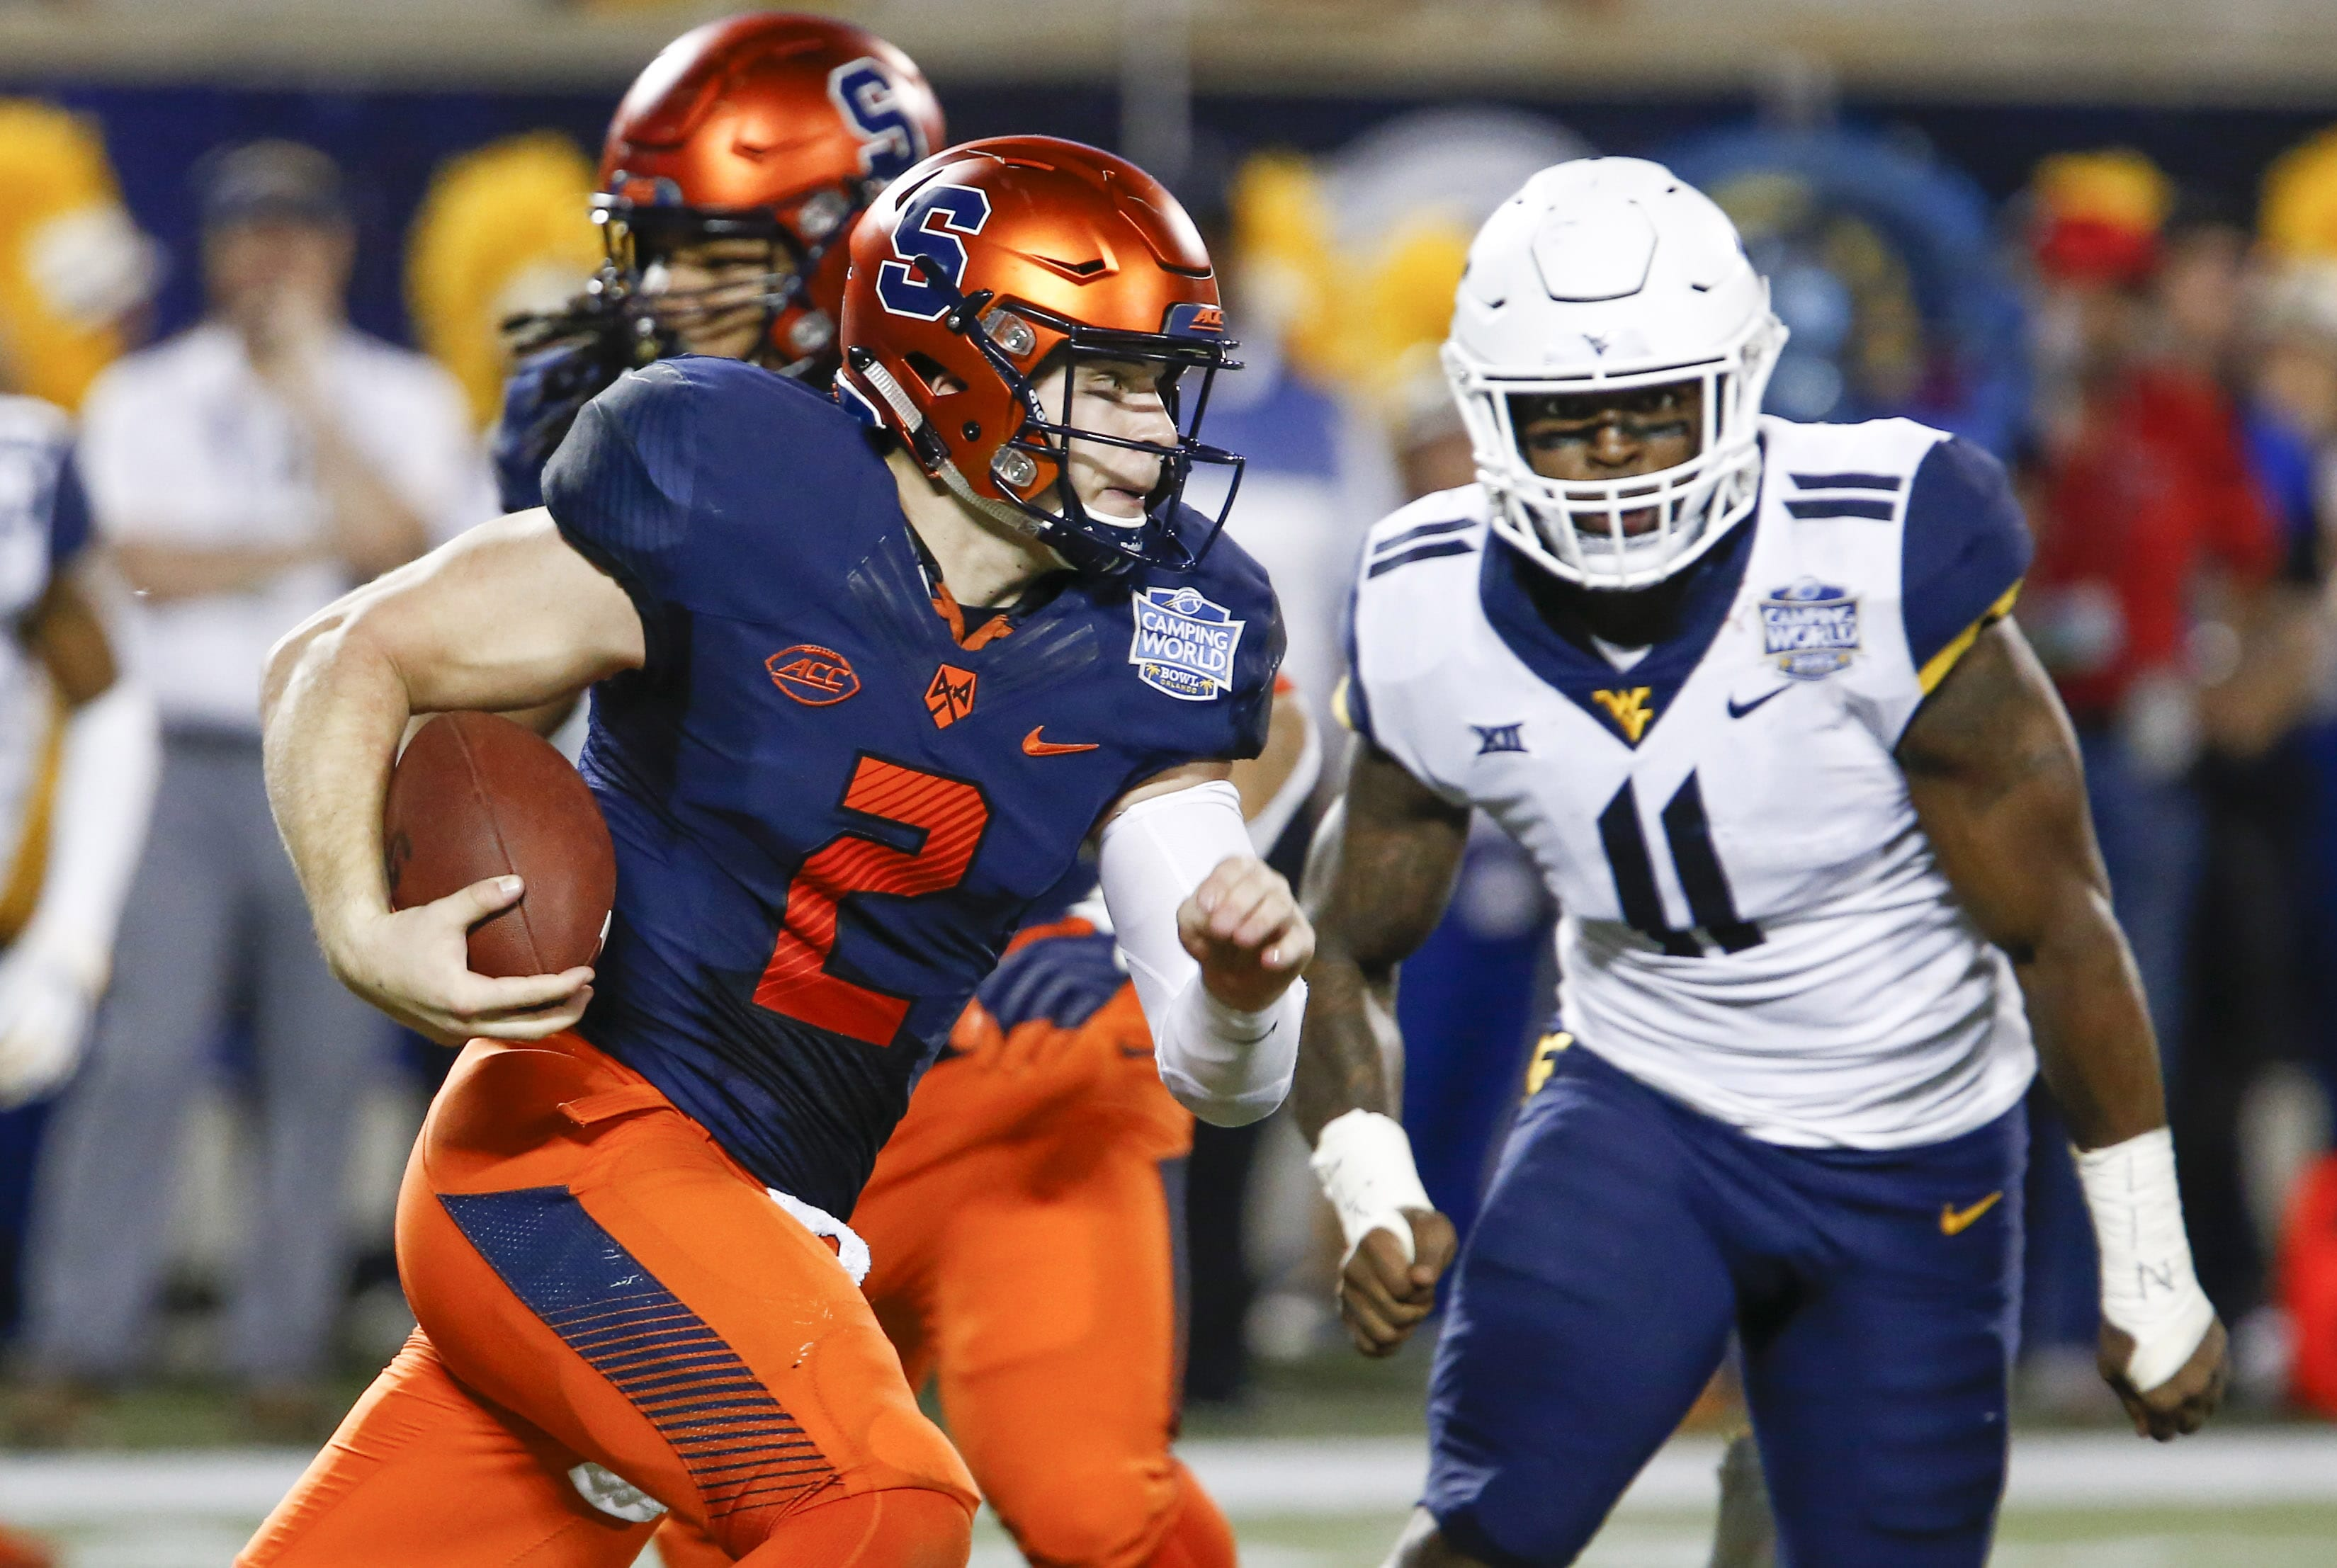 The New York Giants have signed undrafted free agent, Eric Dungey.